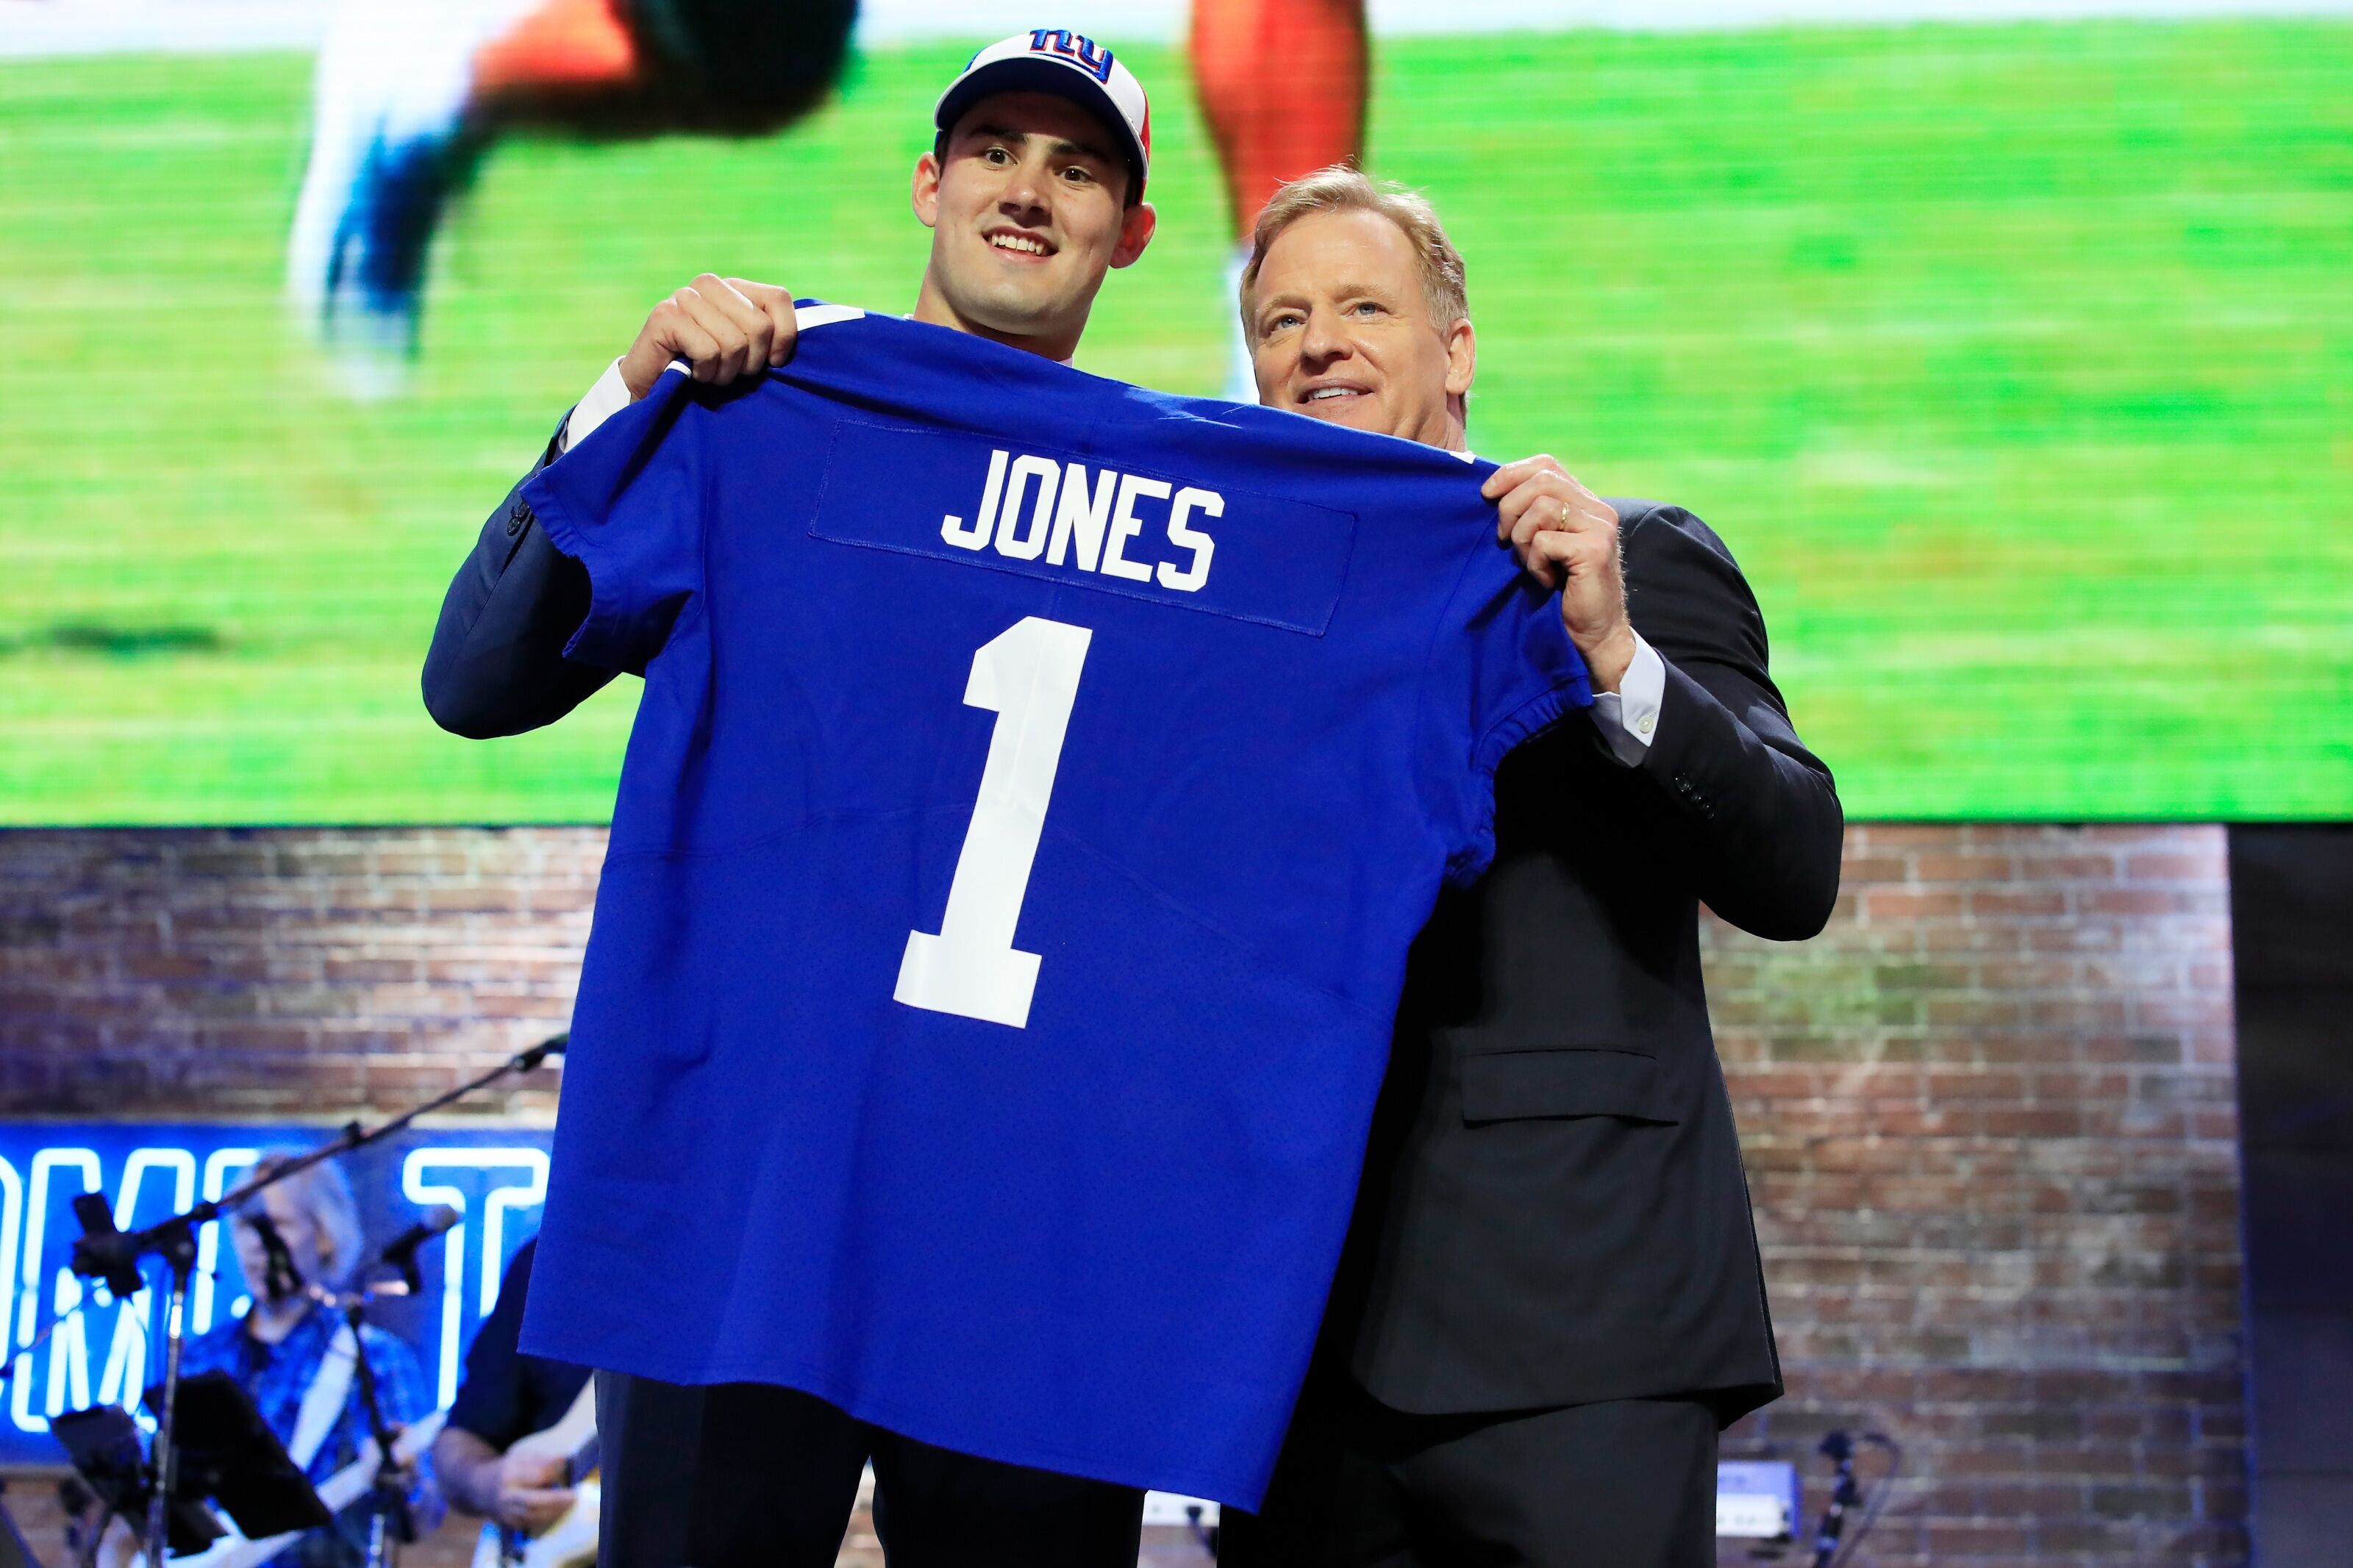 The New York Giants' rookie draft class looks fantastic